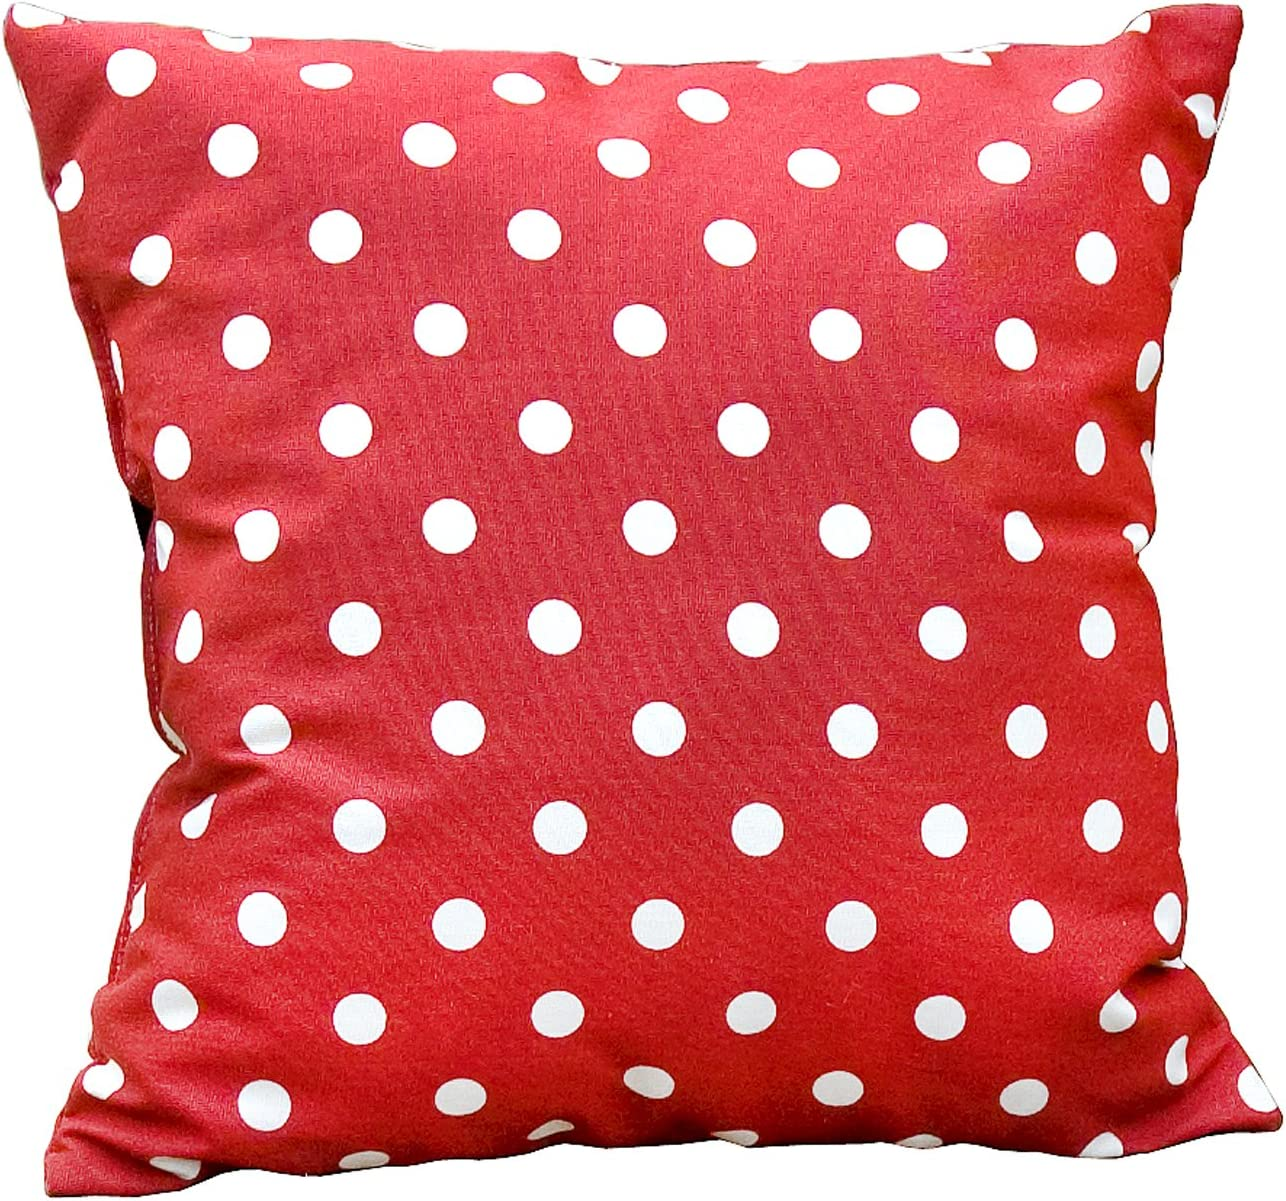 Greendale Home Fashions Outdoor Accent Pillows, Red Polka, Set of 2